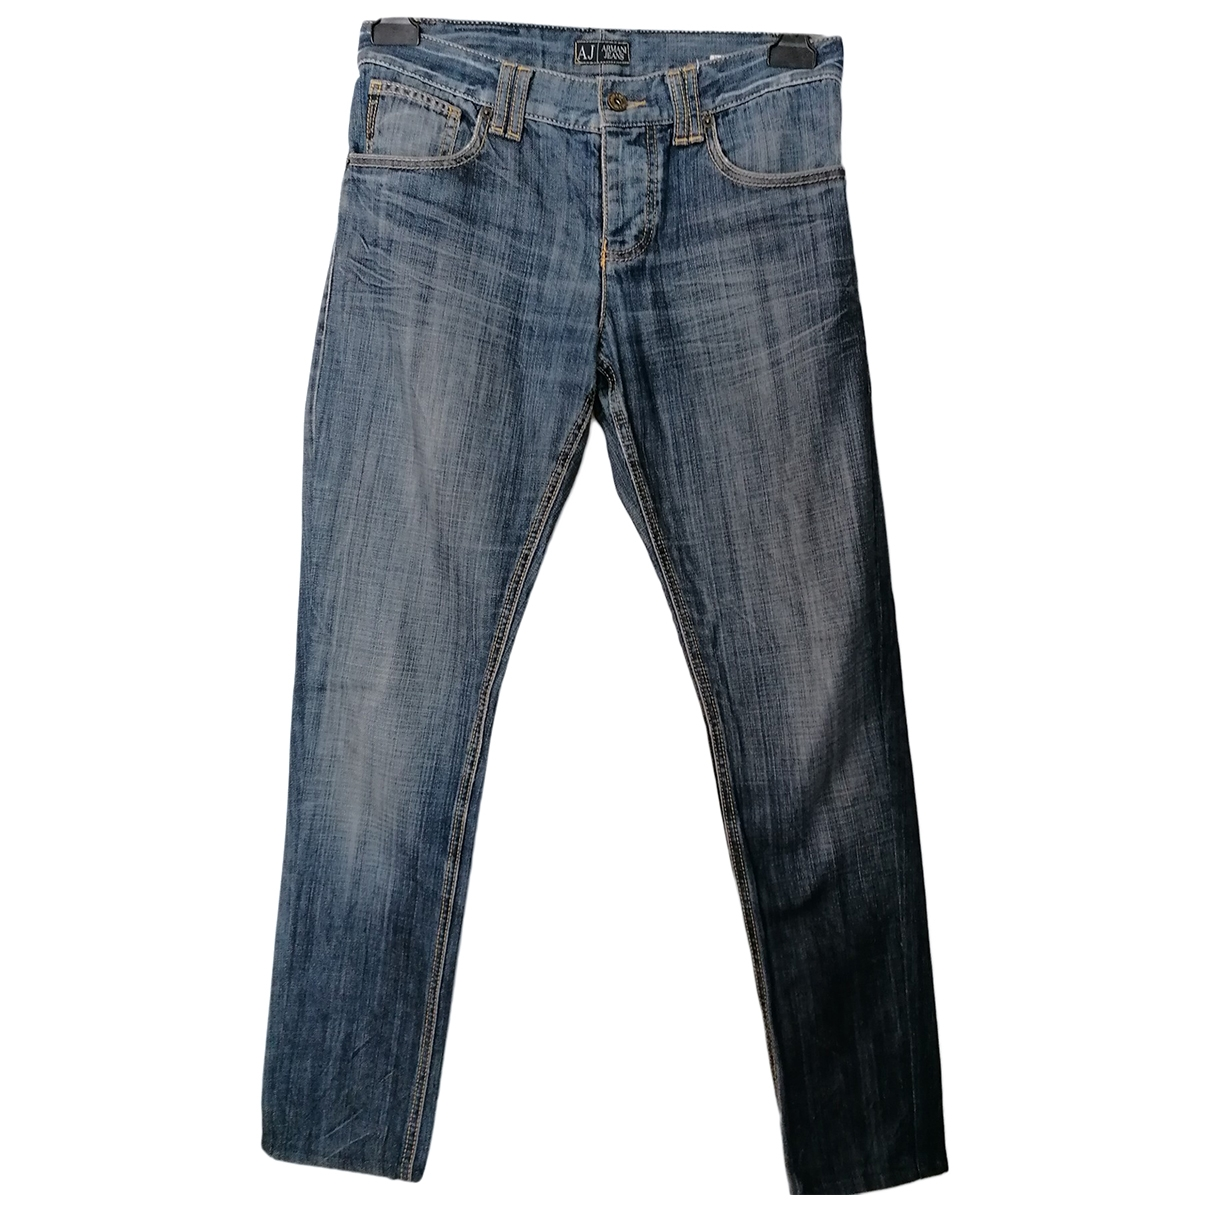 Armani Jeans \N Denim - Jeans Jeans for Women 29 US